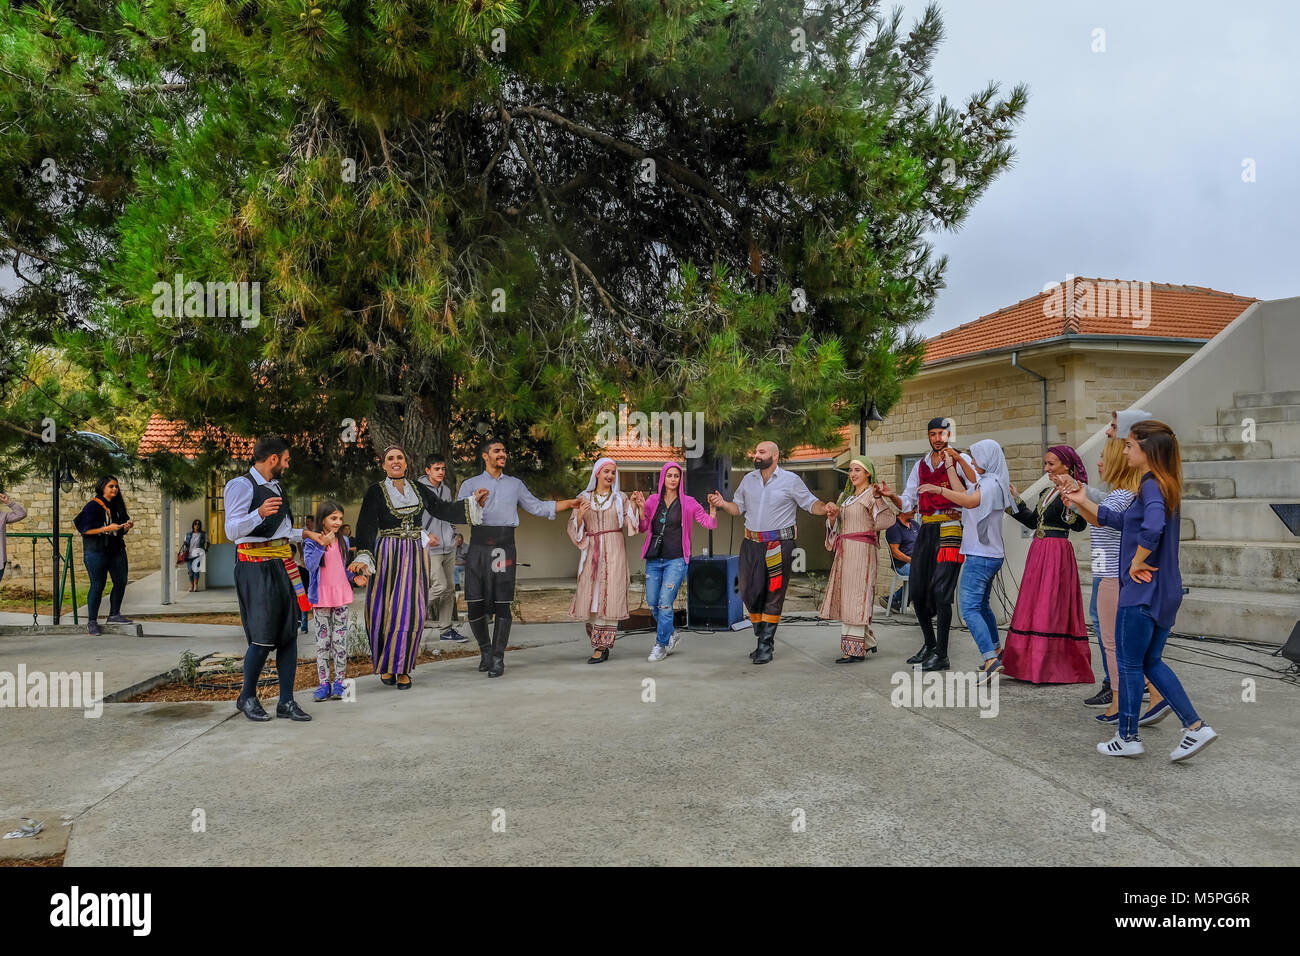 Arsos, Cyprus - October 8, 2017:  Cypriot dancers performing a traditional group dance with audience joining in. - Stock Image